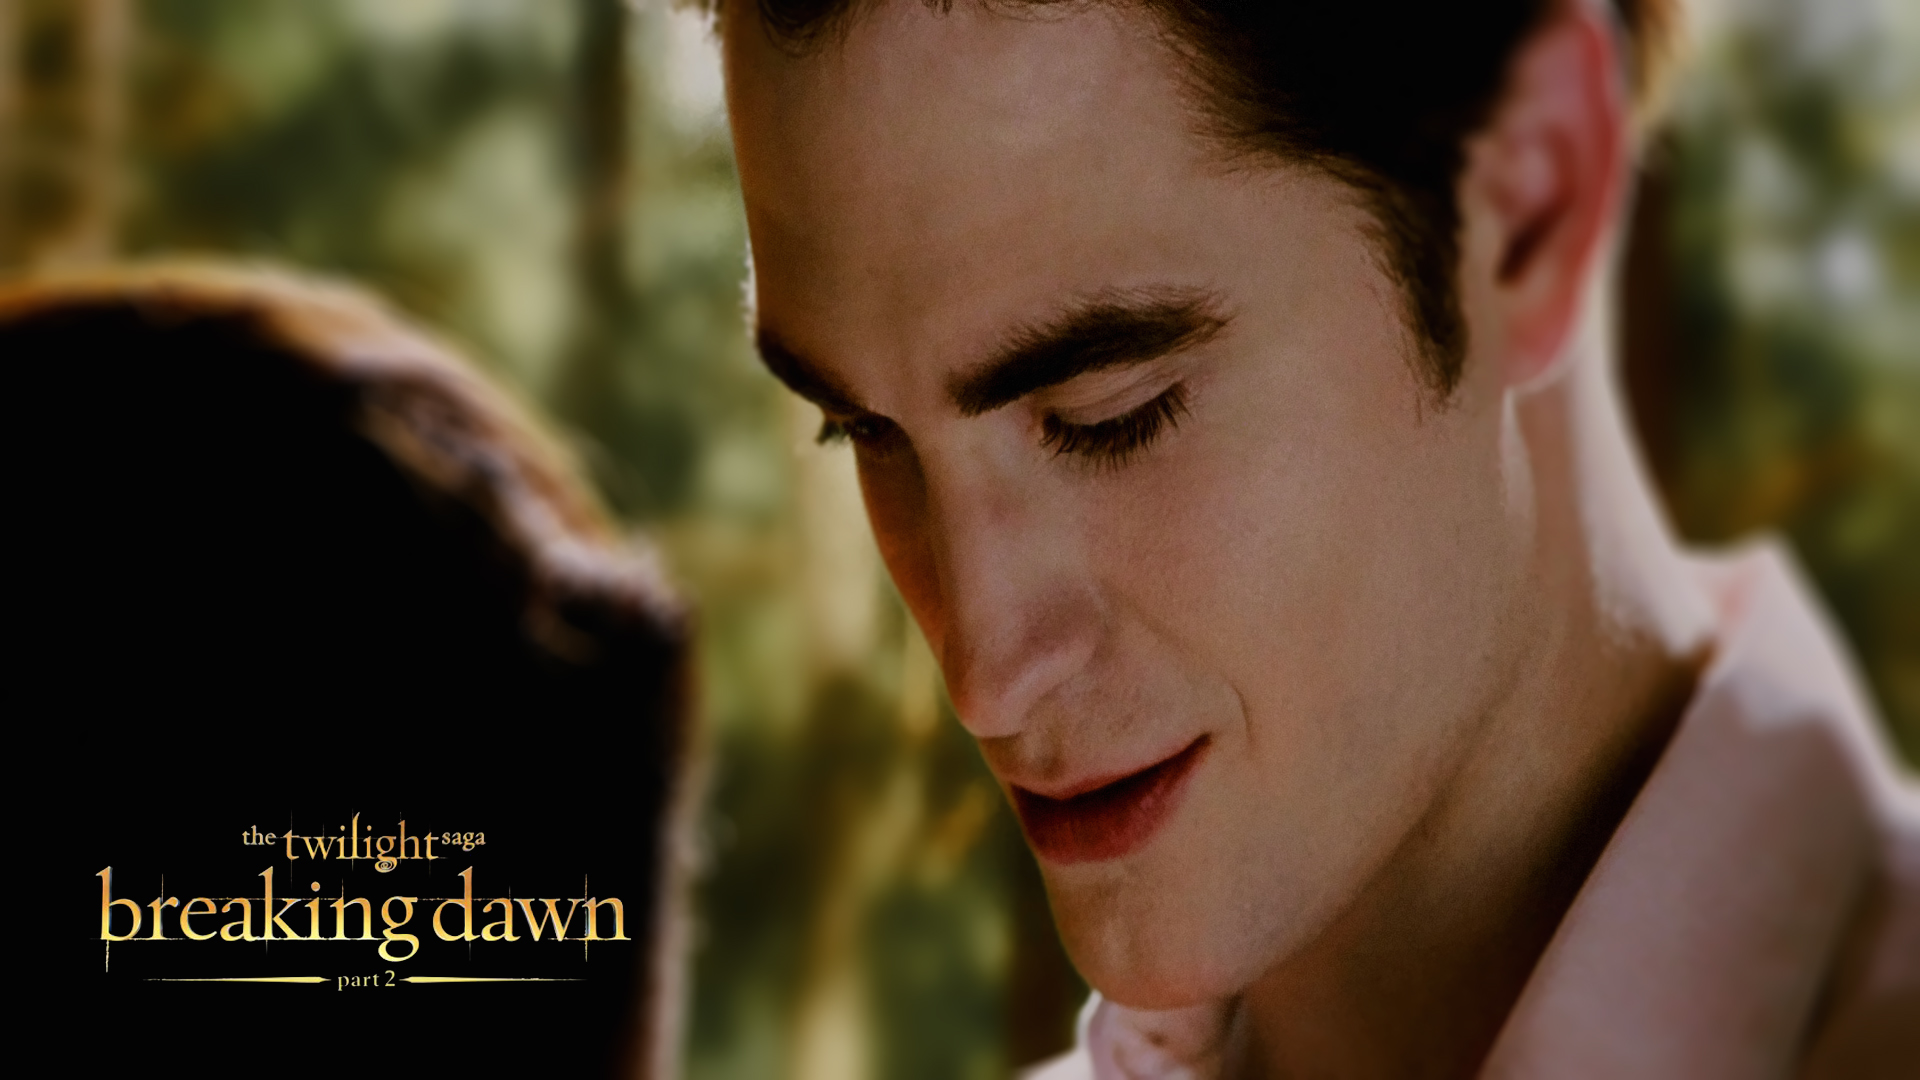 Twilight Breaking Dawn 2 wallpaper 1